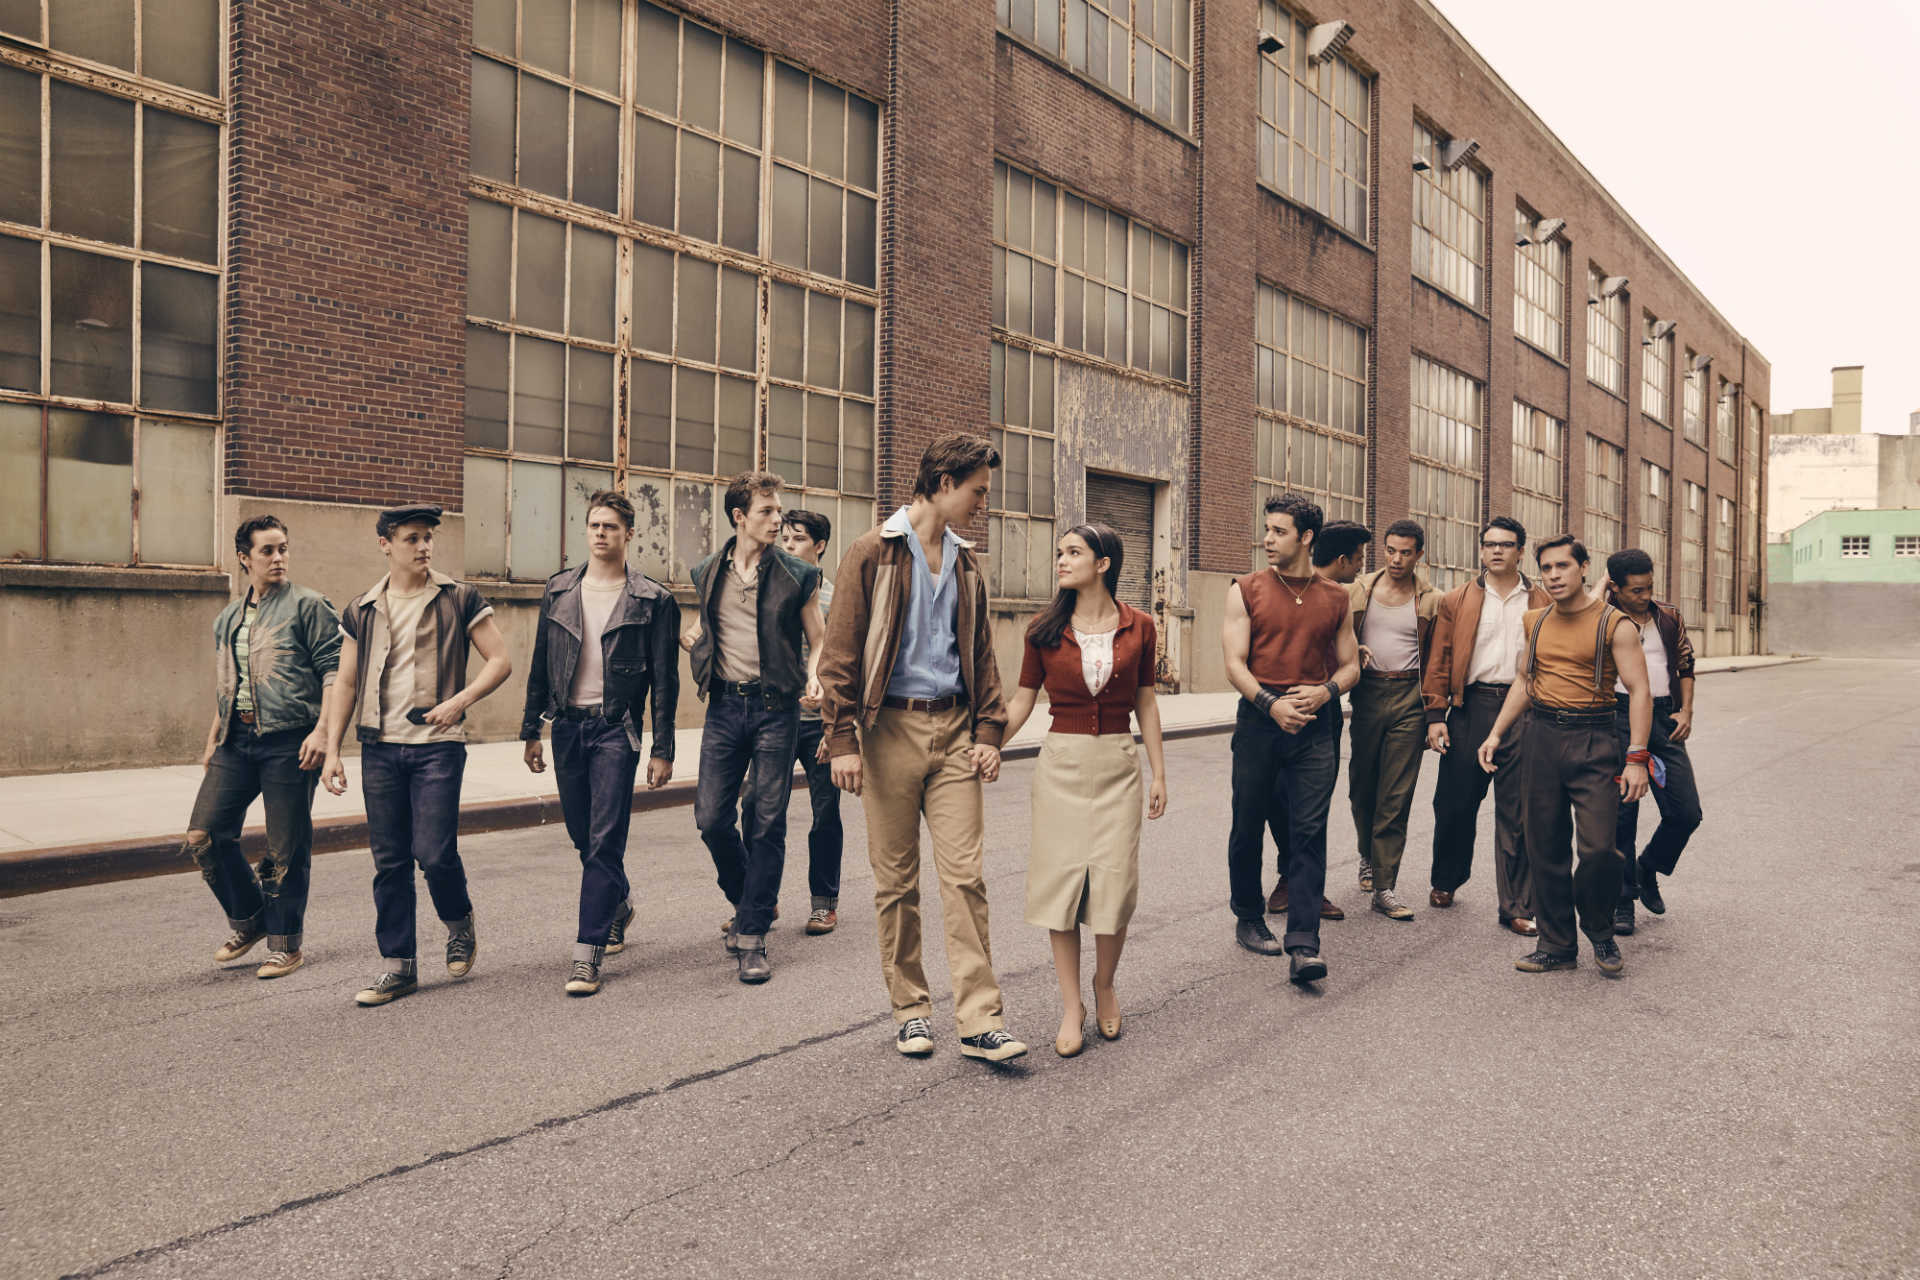 West Side Story: A First Look at Spielberg's Upcoming Film